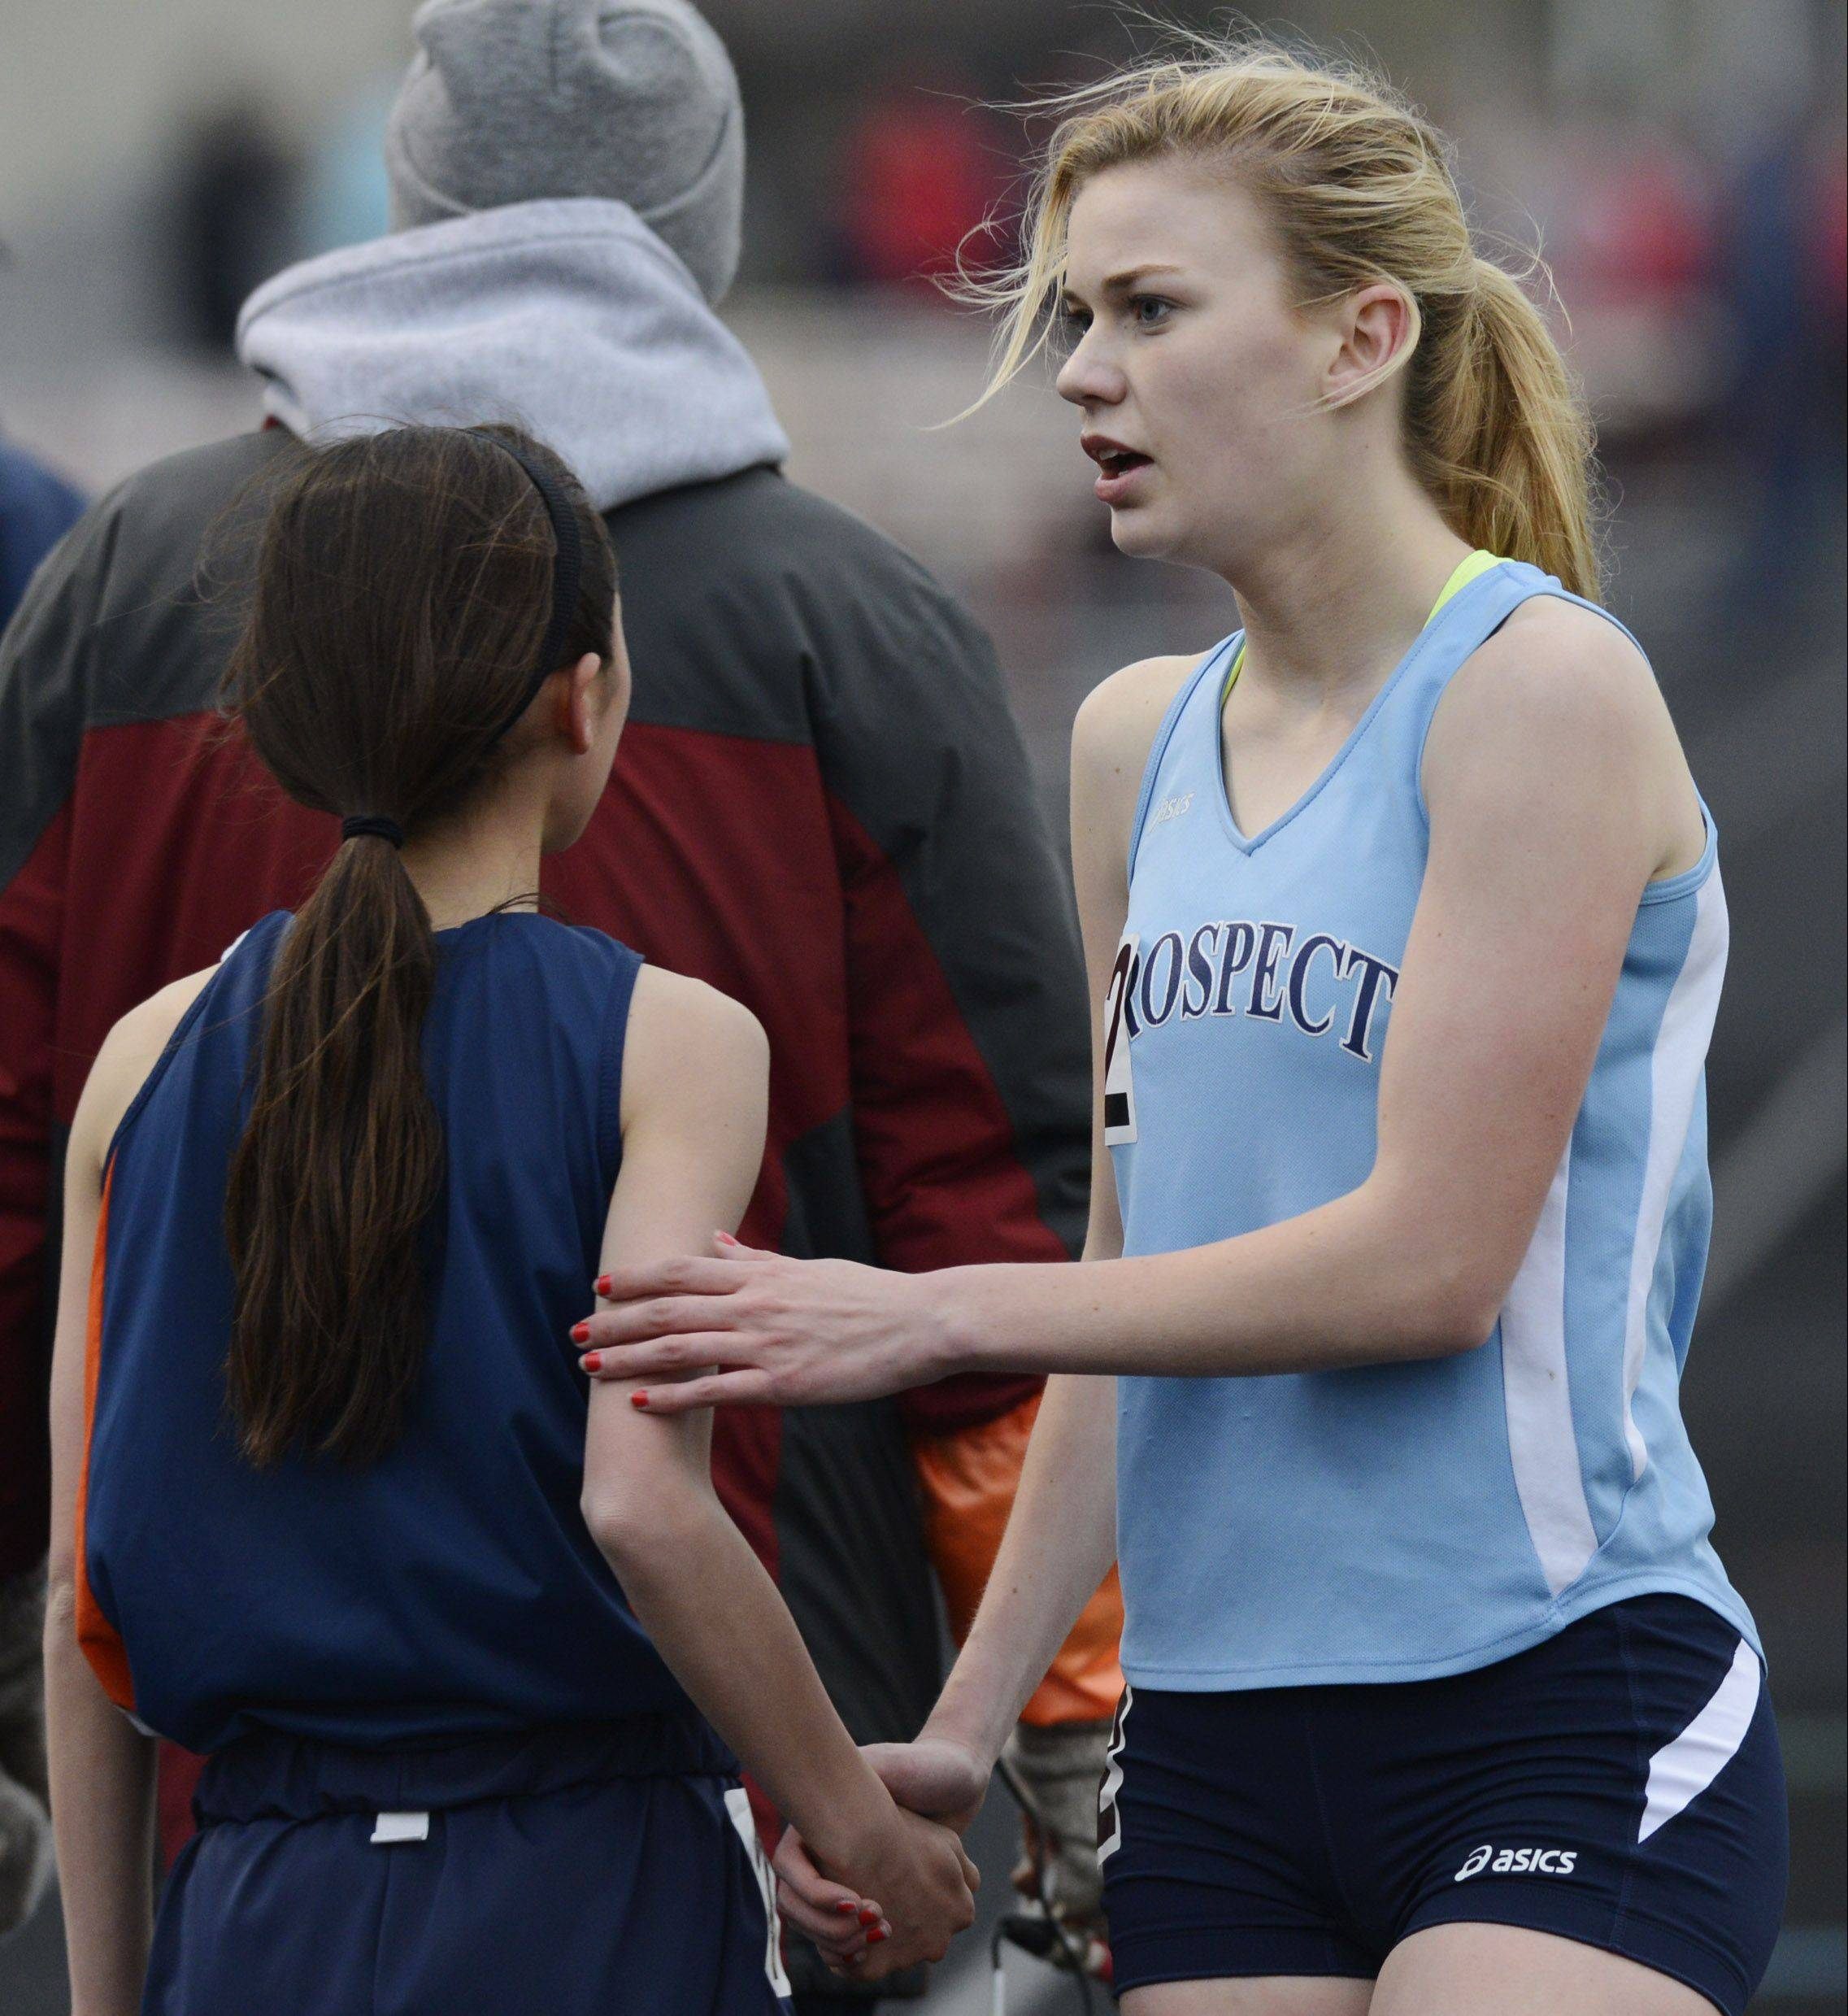 Prospect's Brooke Wolfe, right, who finished second in the 3,200-meter run, congratulates winner Kaitlyn Ko of Buffalo Grove during the Mid-Suburban League girls track meet at Schaumburg on Friday.